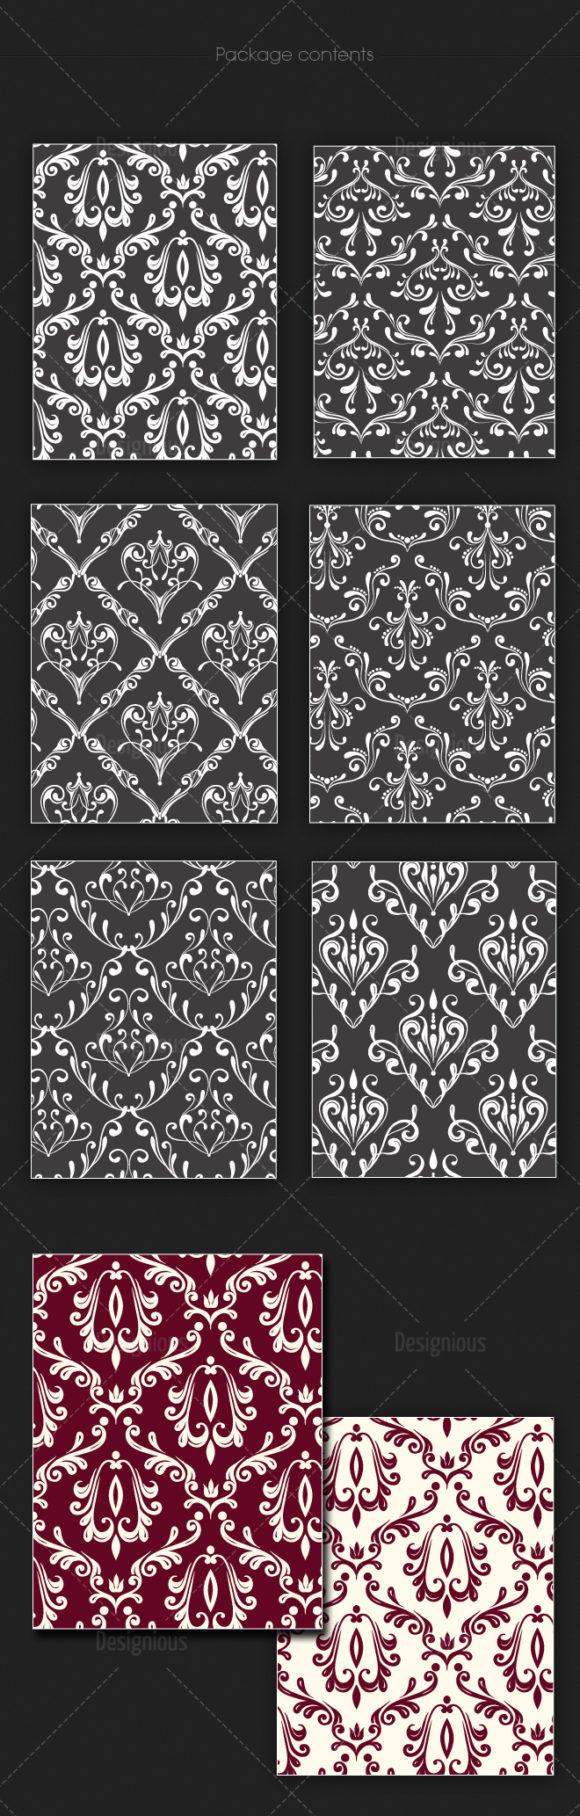 Seamless Patterns Vector Pack 124 products seamless patterns vector pack 124 large